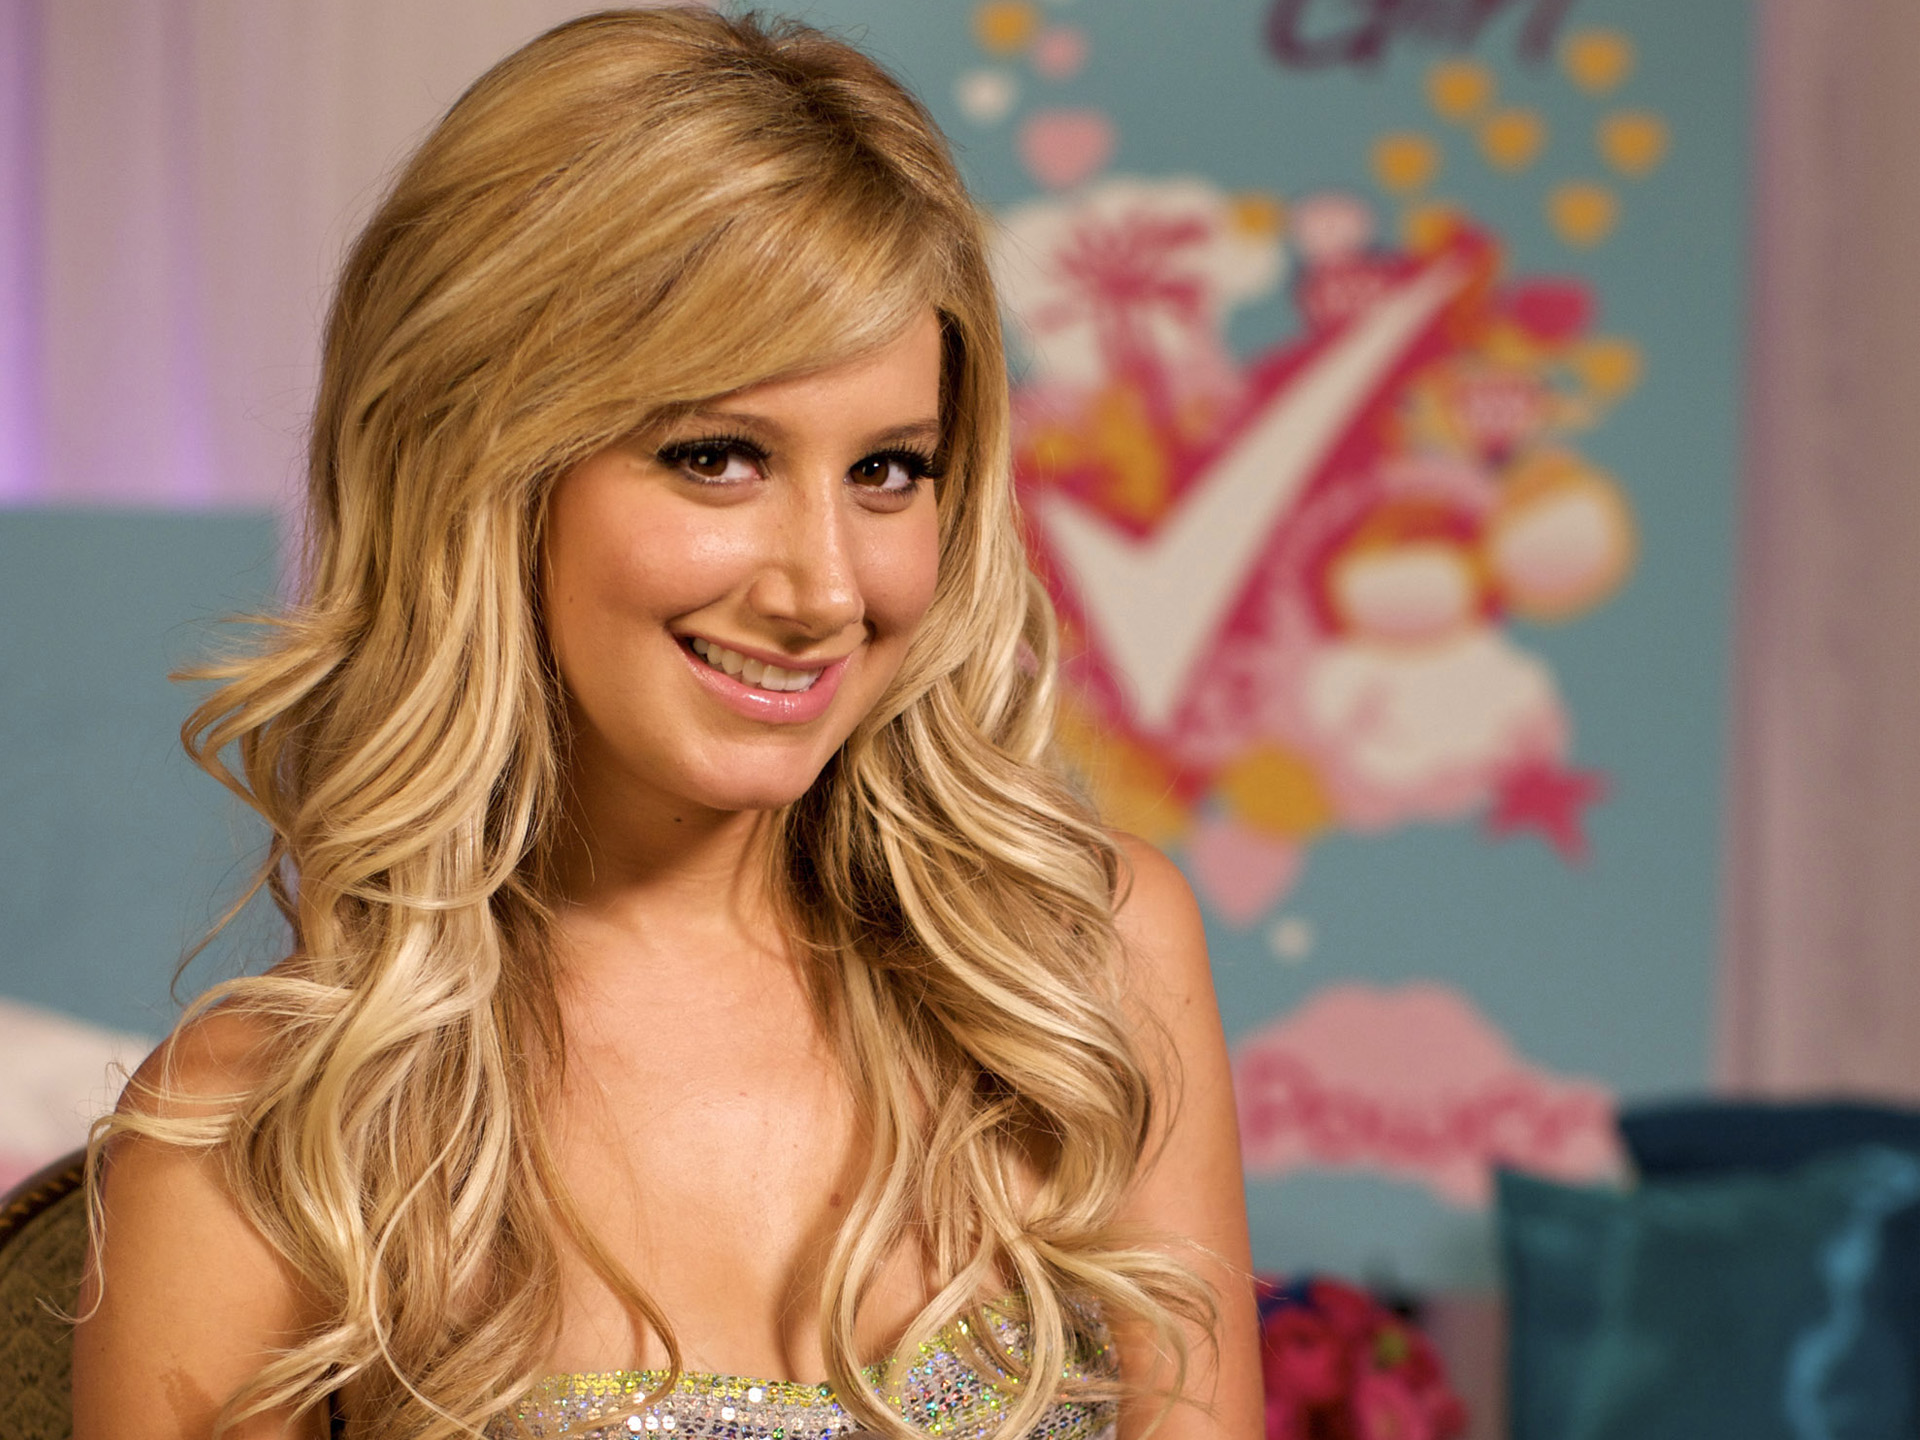 HD Wallpapers Ashley Tisdale Smile